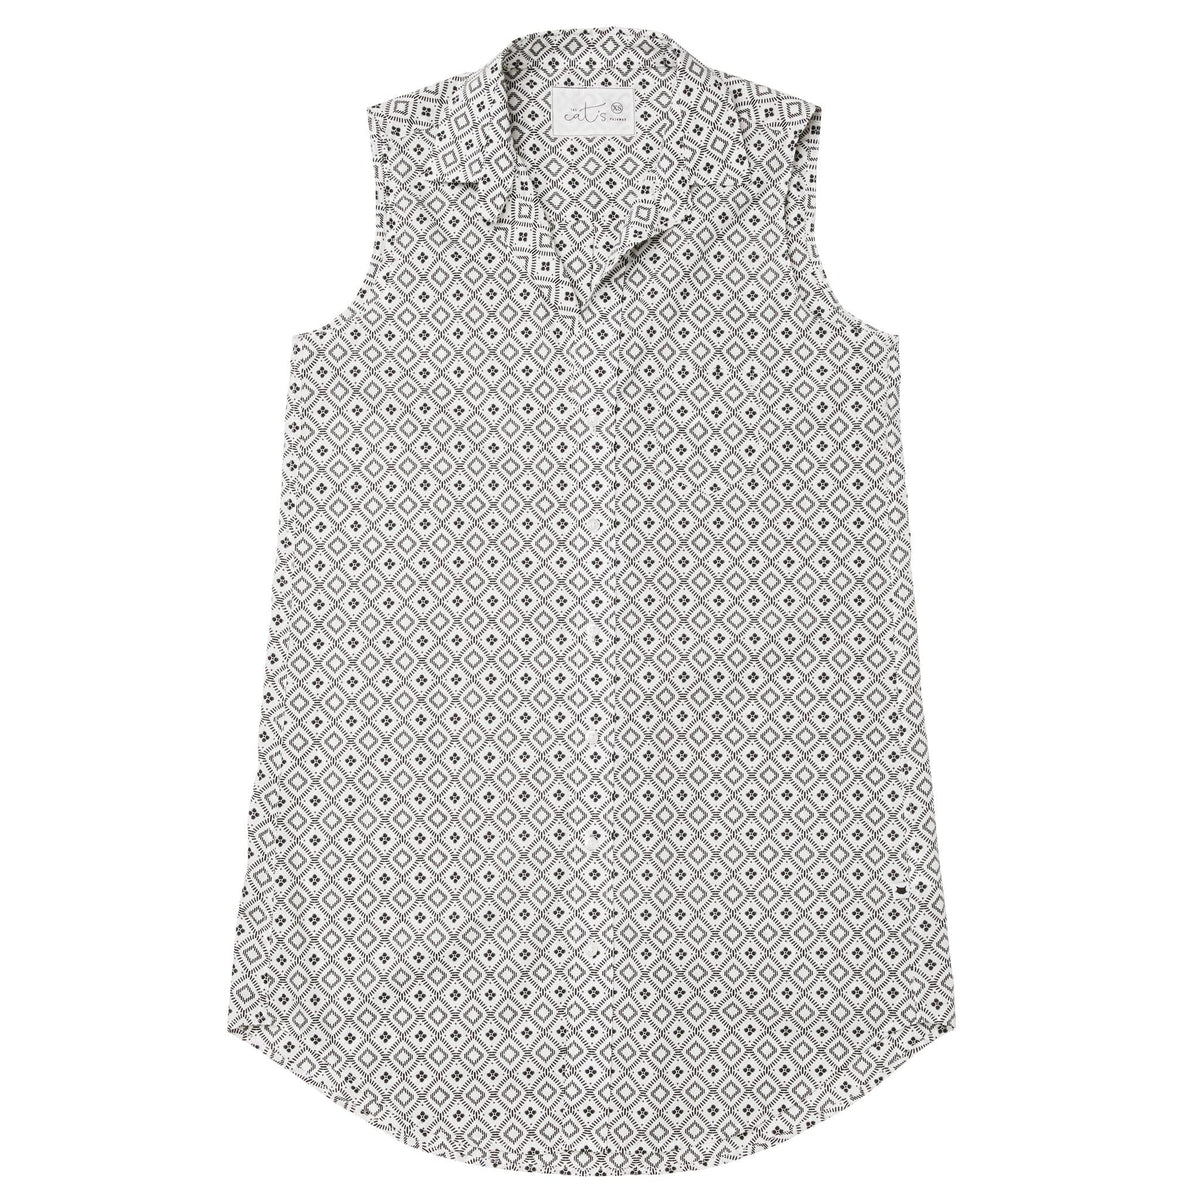 Barrington Luxe Pima Sleeveless Night Shirttest